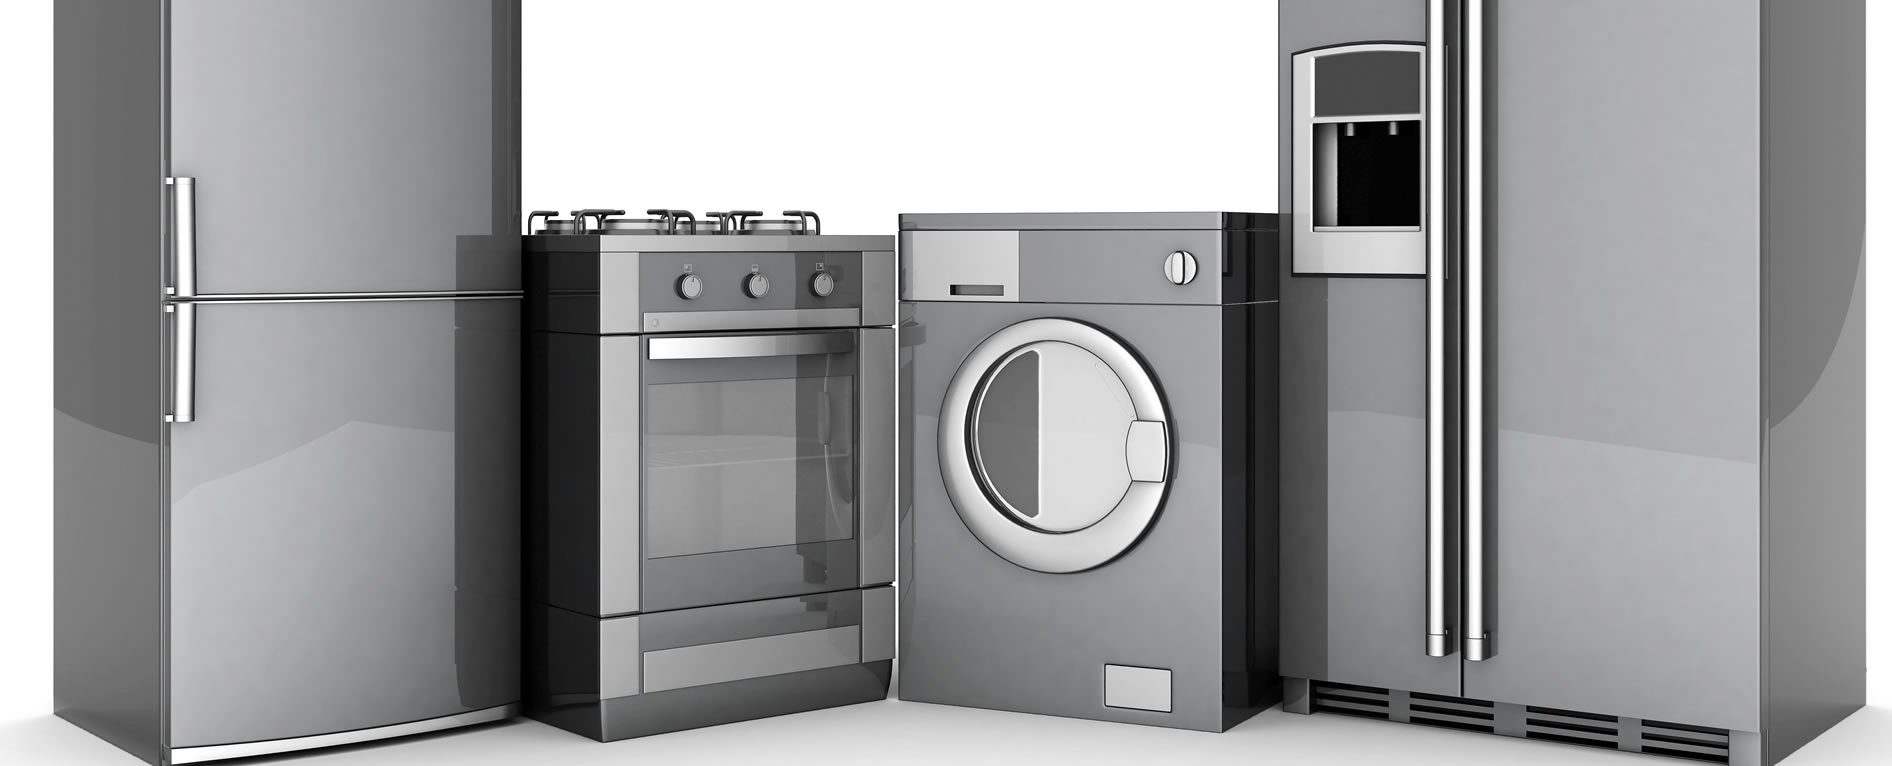 Things to Consider Before Buying a Washing Machine